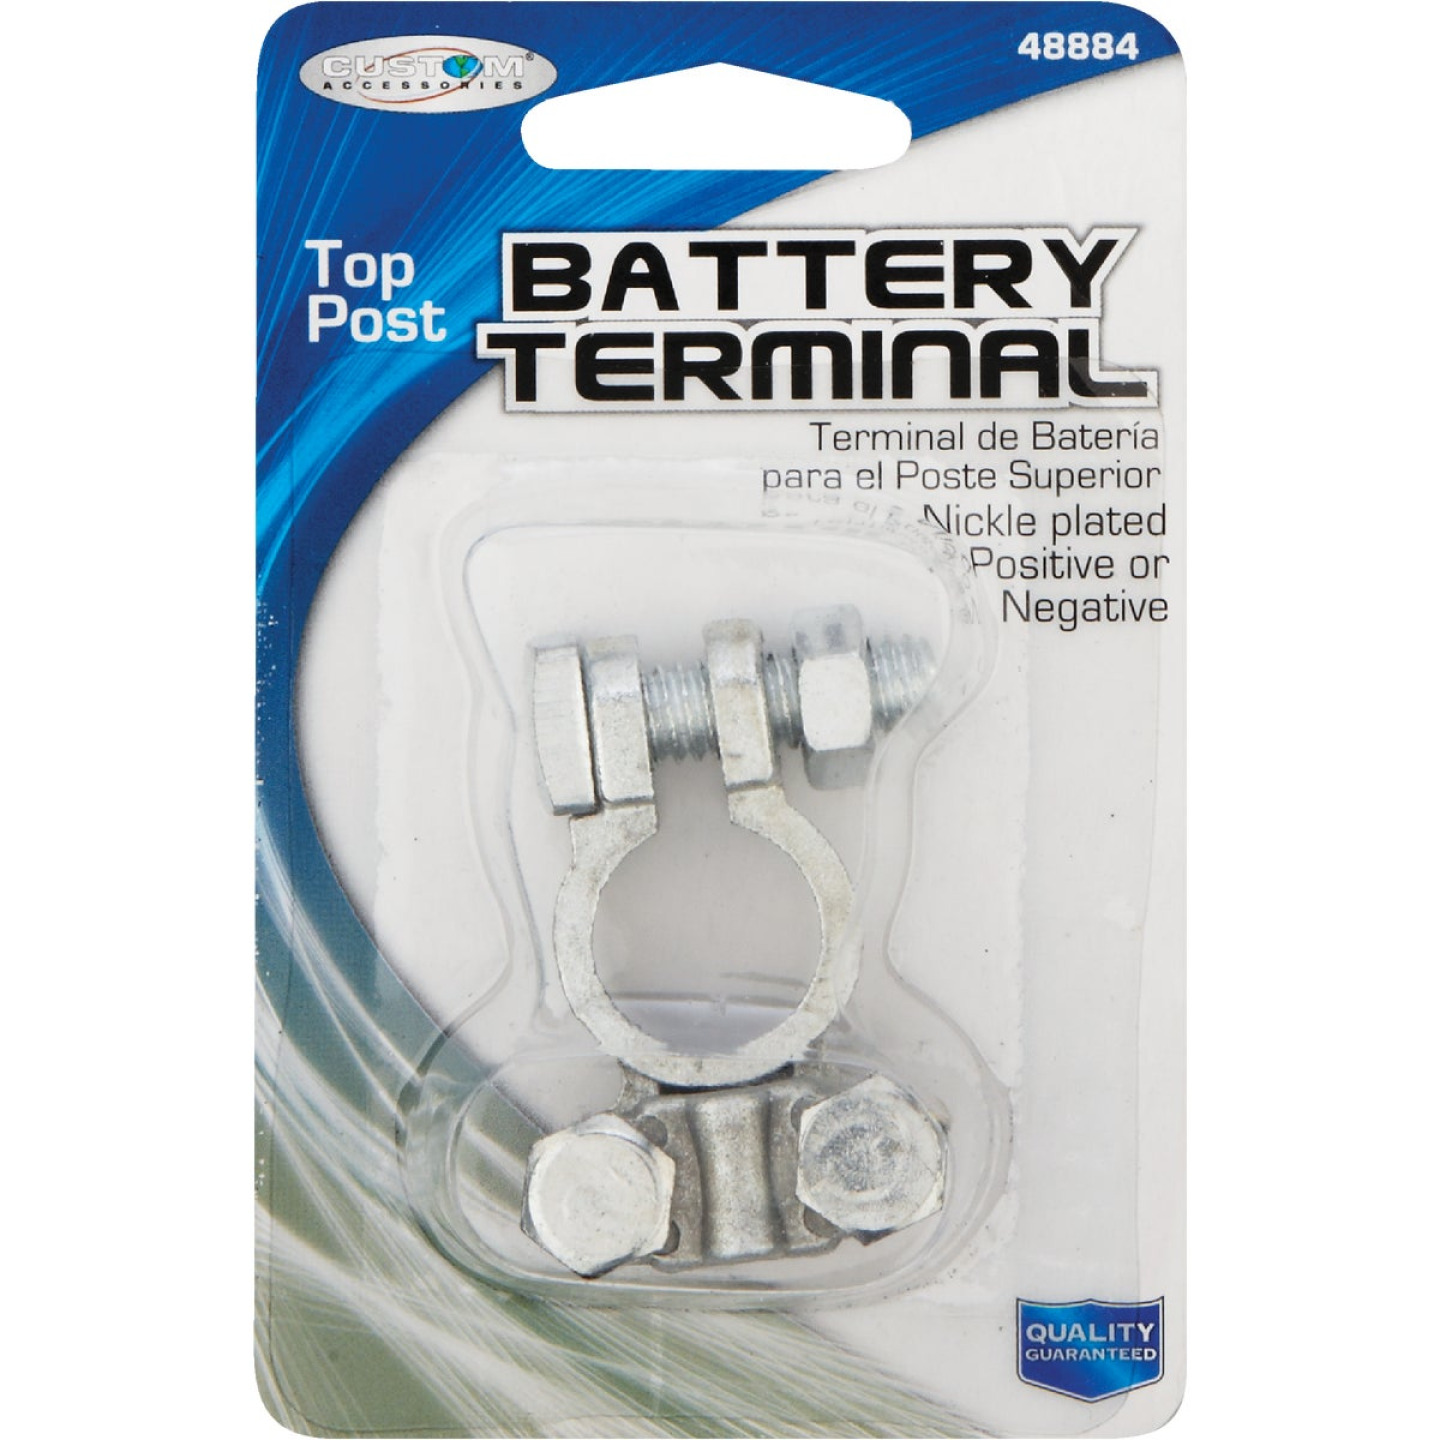 Custom Accessories Top Post Nickel-Plated Battery Terminal Image 2